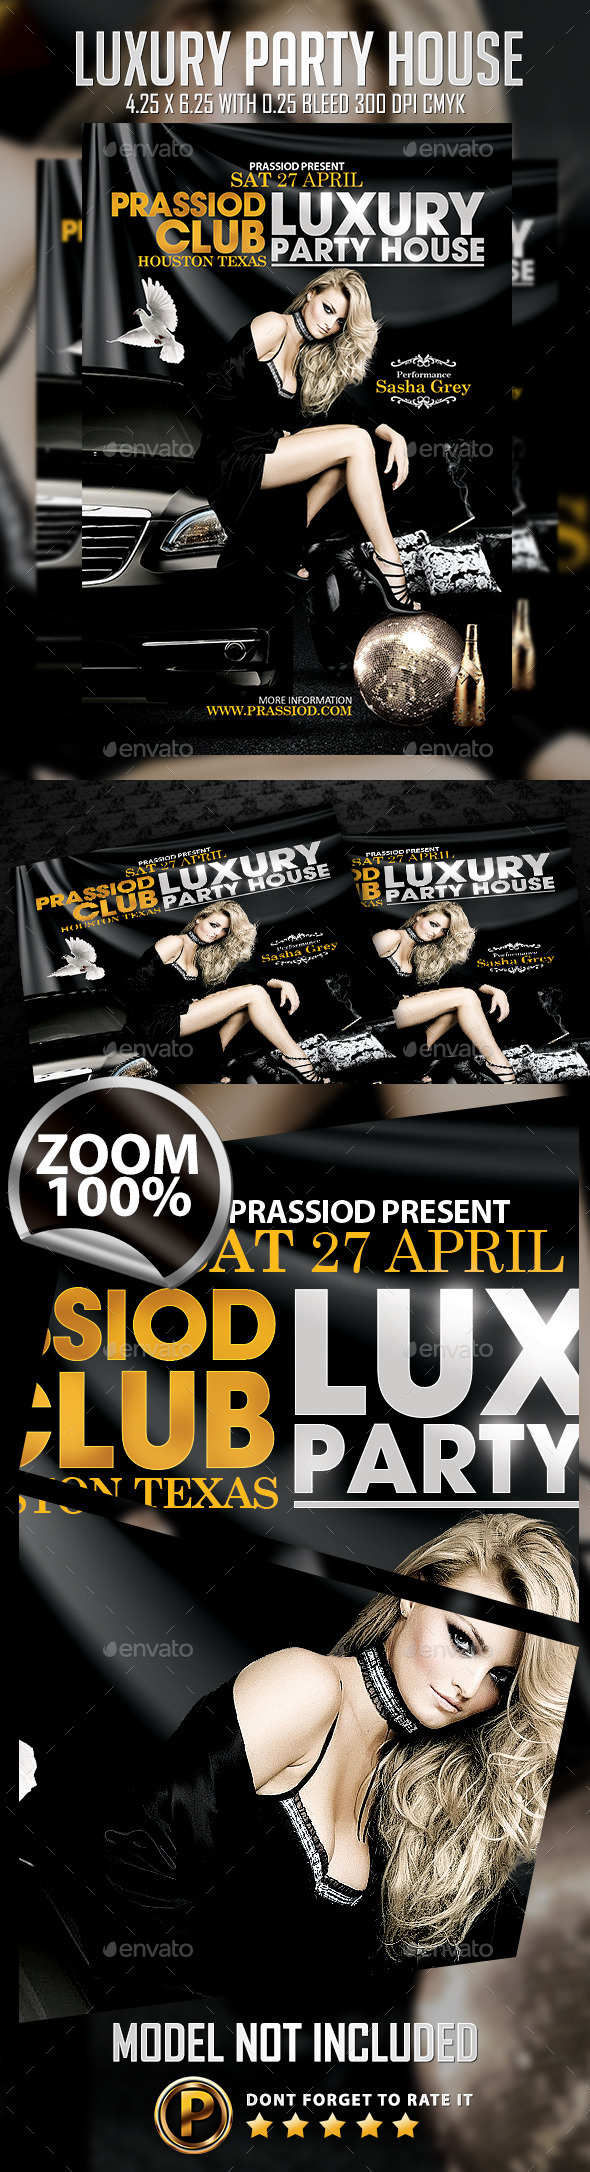 Luxury Party House Flyer Template - Clubs & Parties Events